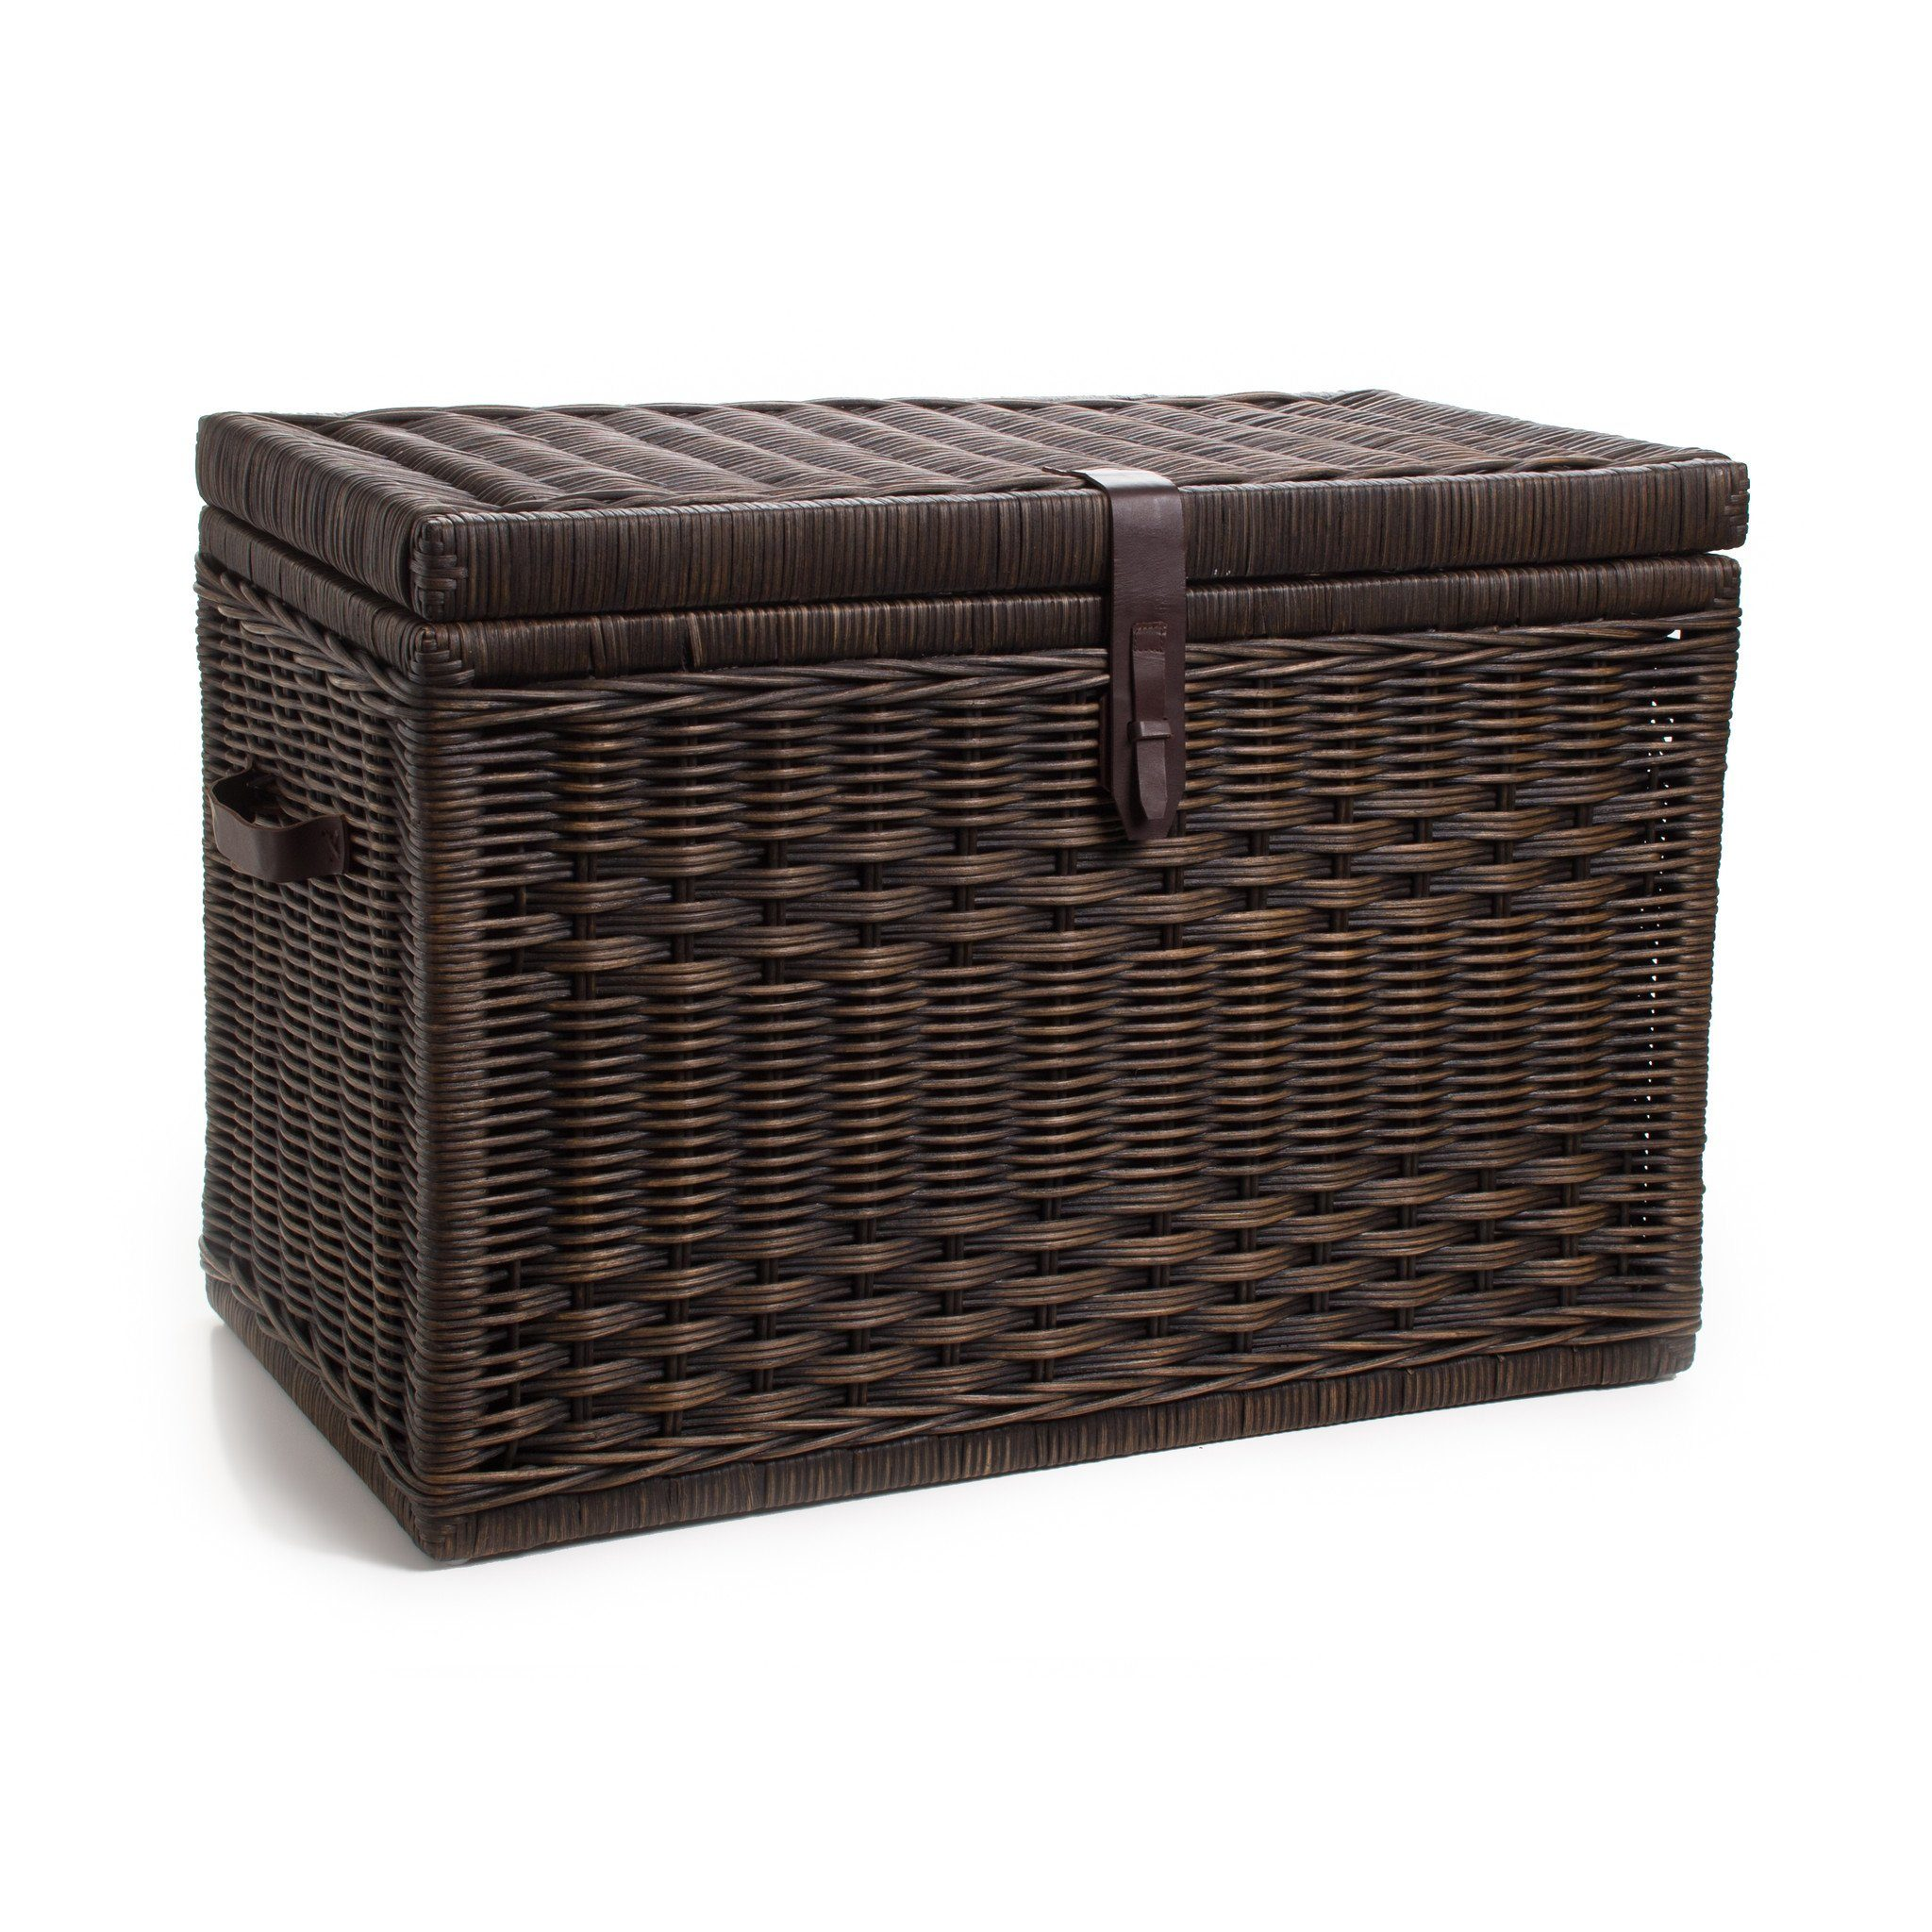 DVD/Paper Storage Basket, 2 sizes shown in Antique Walnut Brown